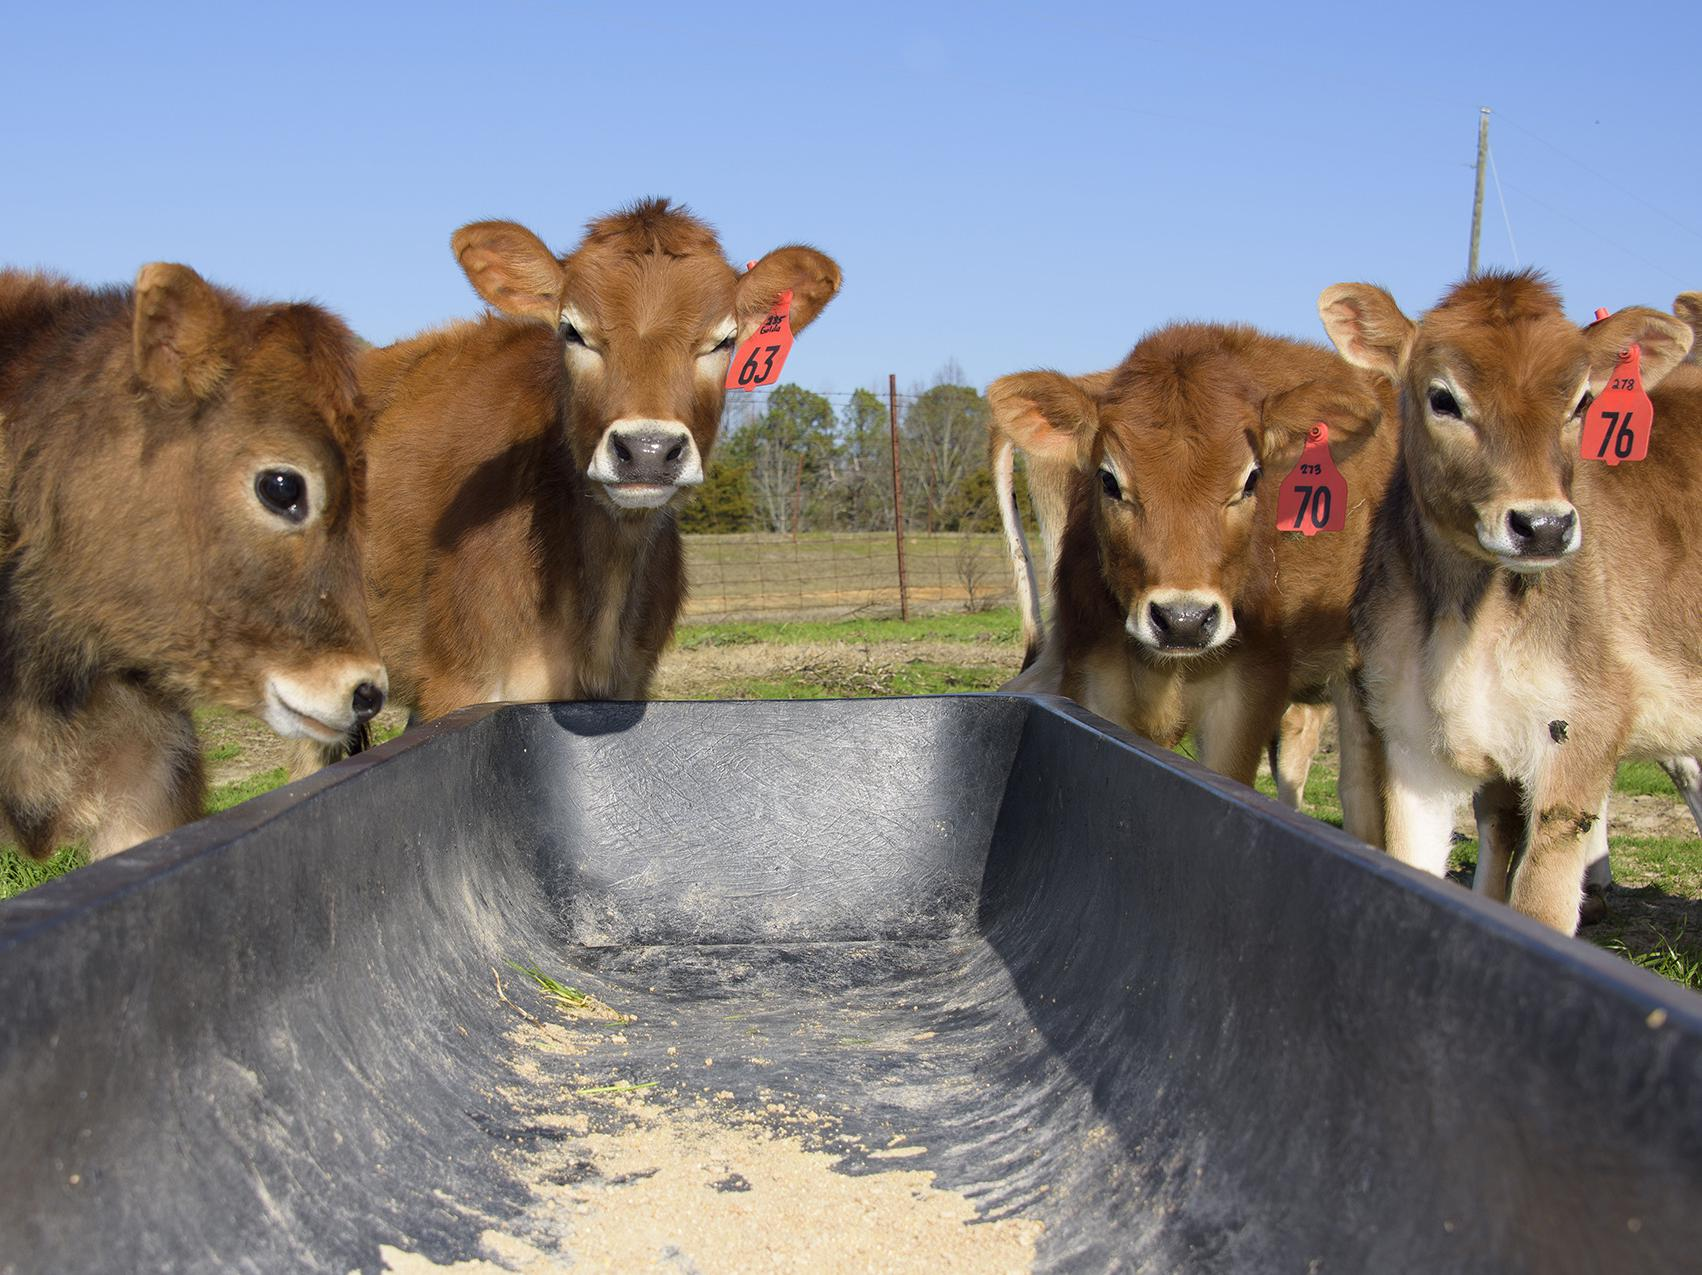 Jersey cows huddle outside the Joe Bearden Dairy Research Center in Sessums, Mississippi in February. Primarily due to a lower number of dairy cows, the state's milk production in the first quarter of 2017 was down from the previous year. (Photo by MSU Extension/Kevin Hudson)